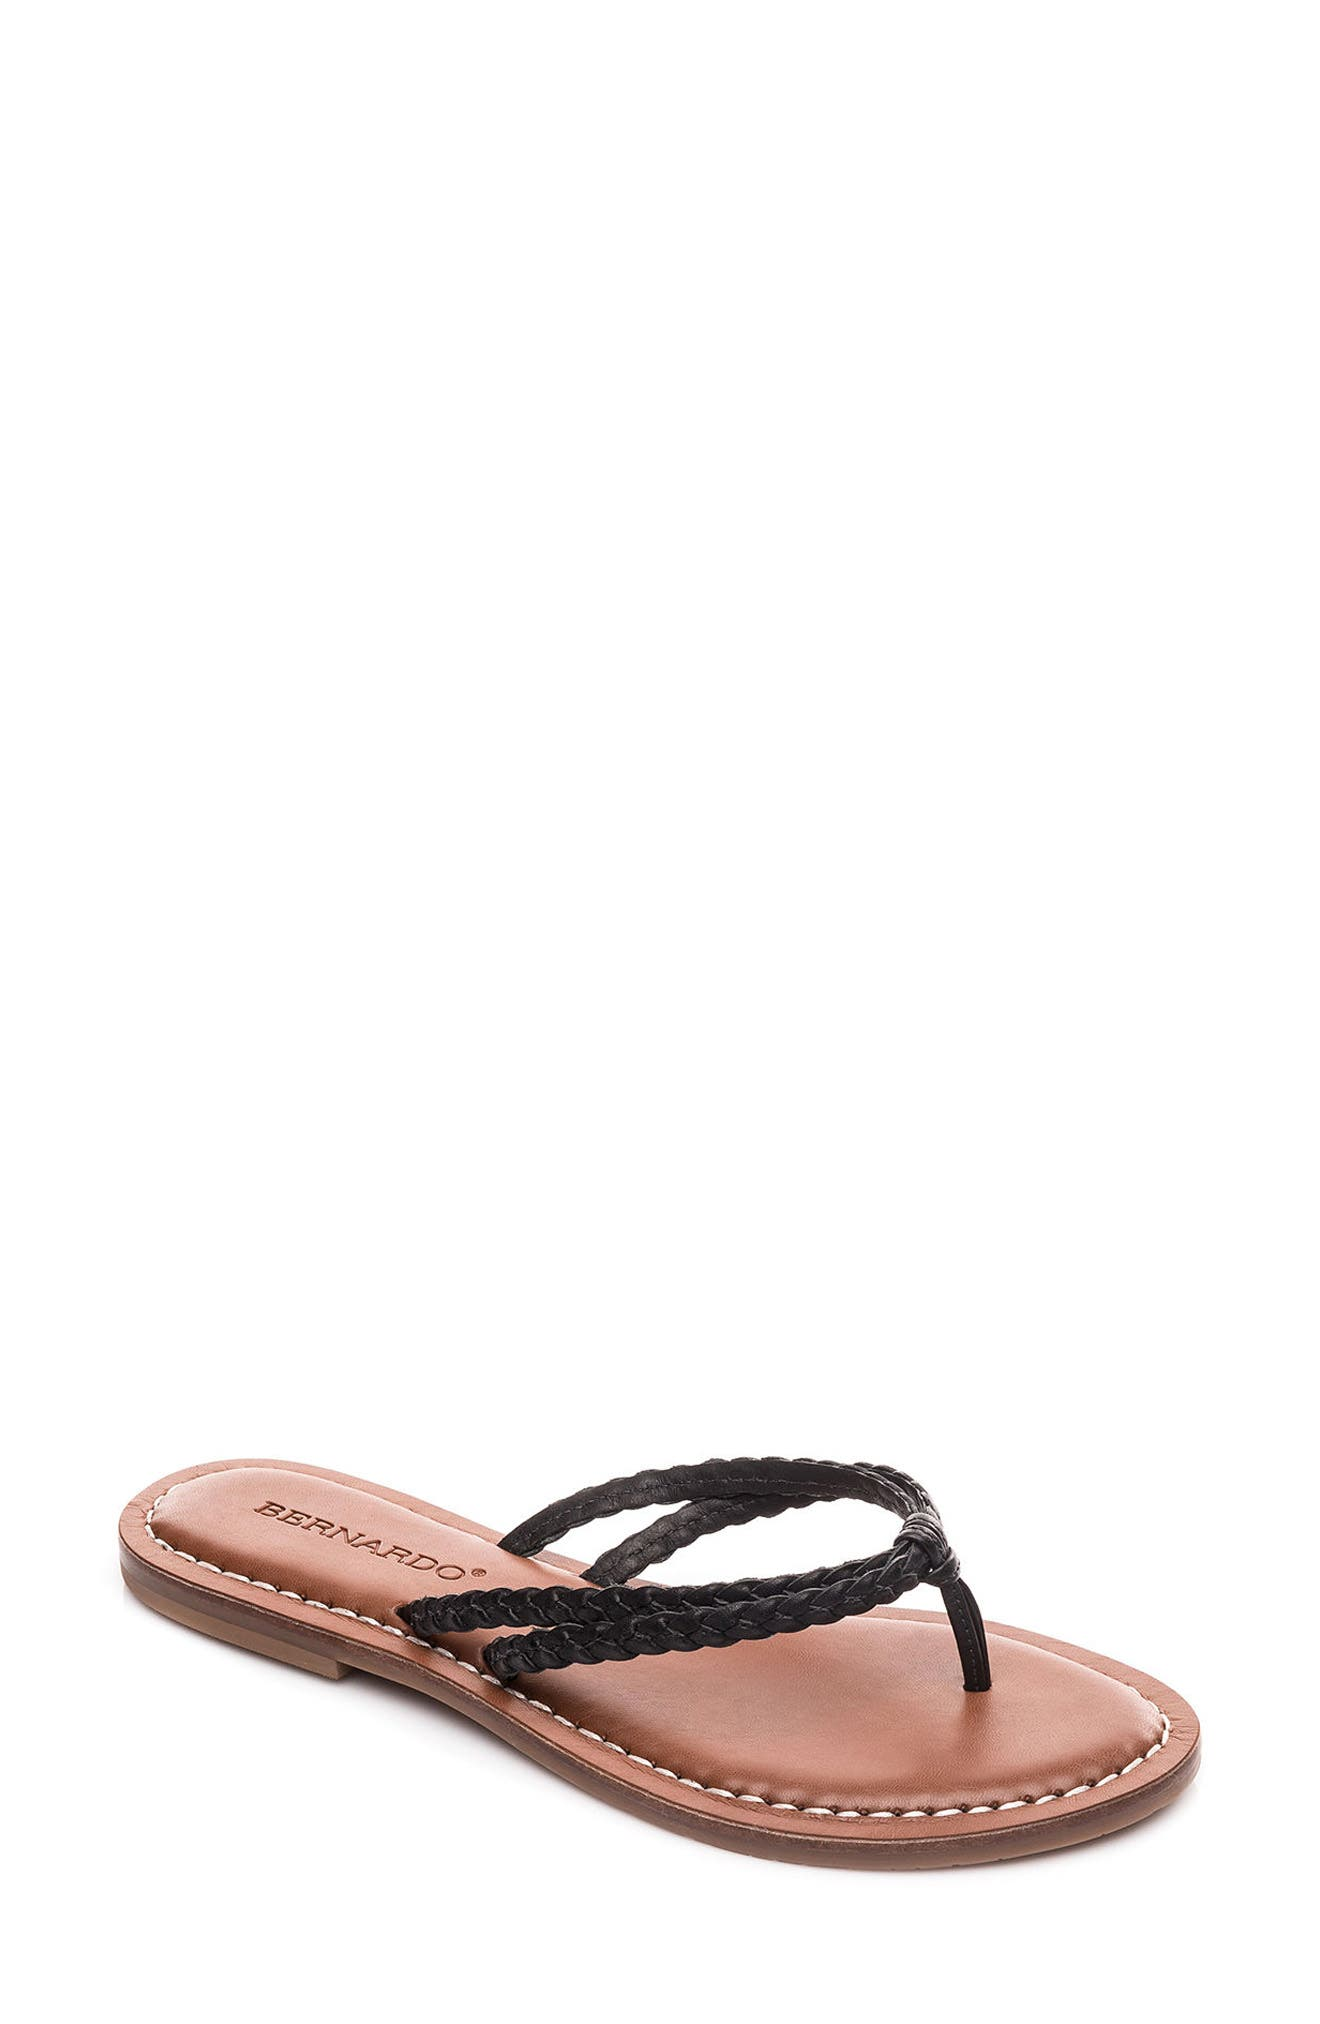 Bernardo Greta Braided Strap Sandal,                             Main thumbnail 1, color,